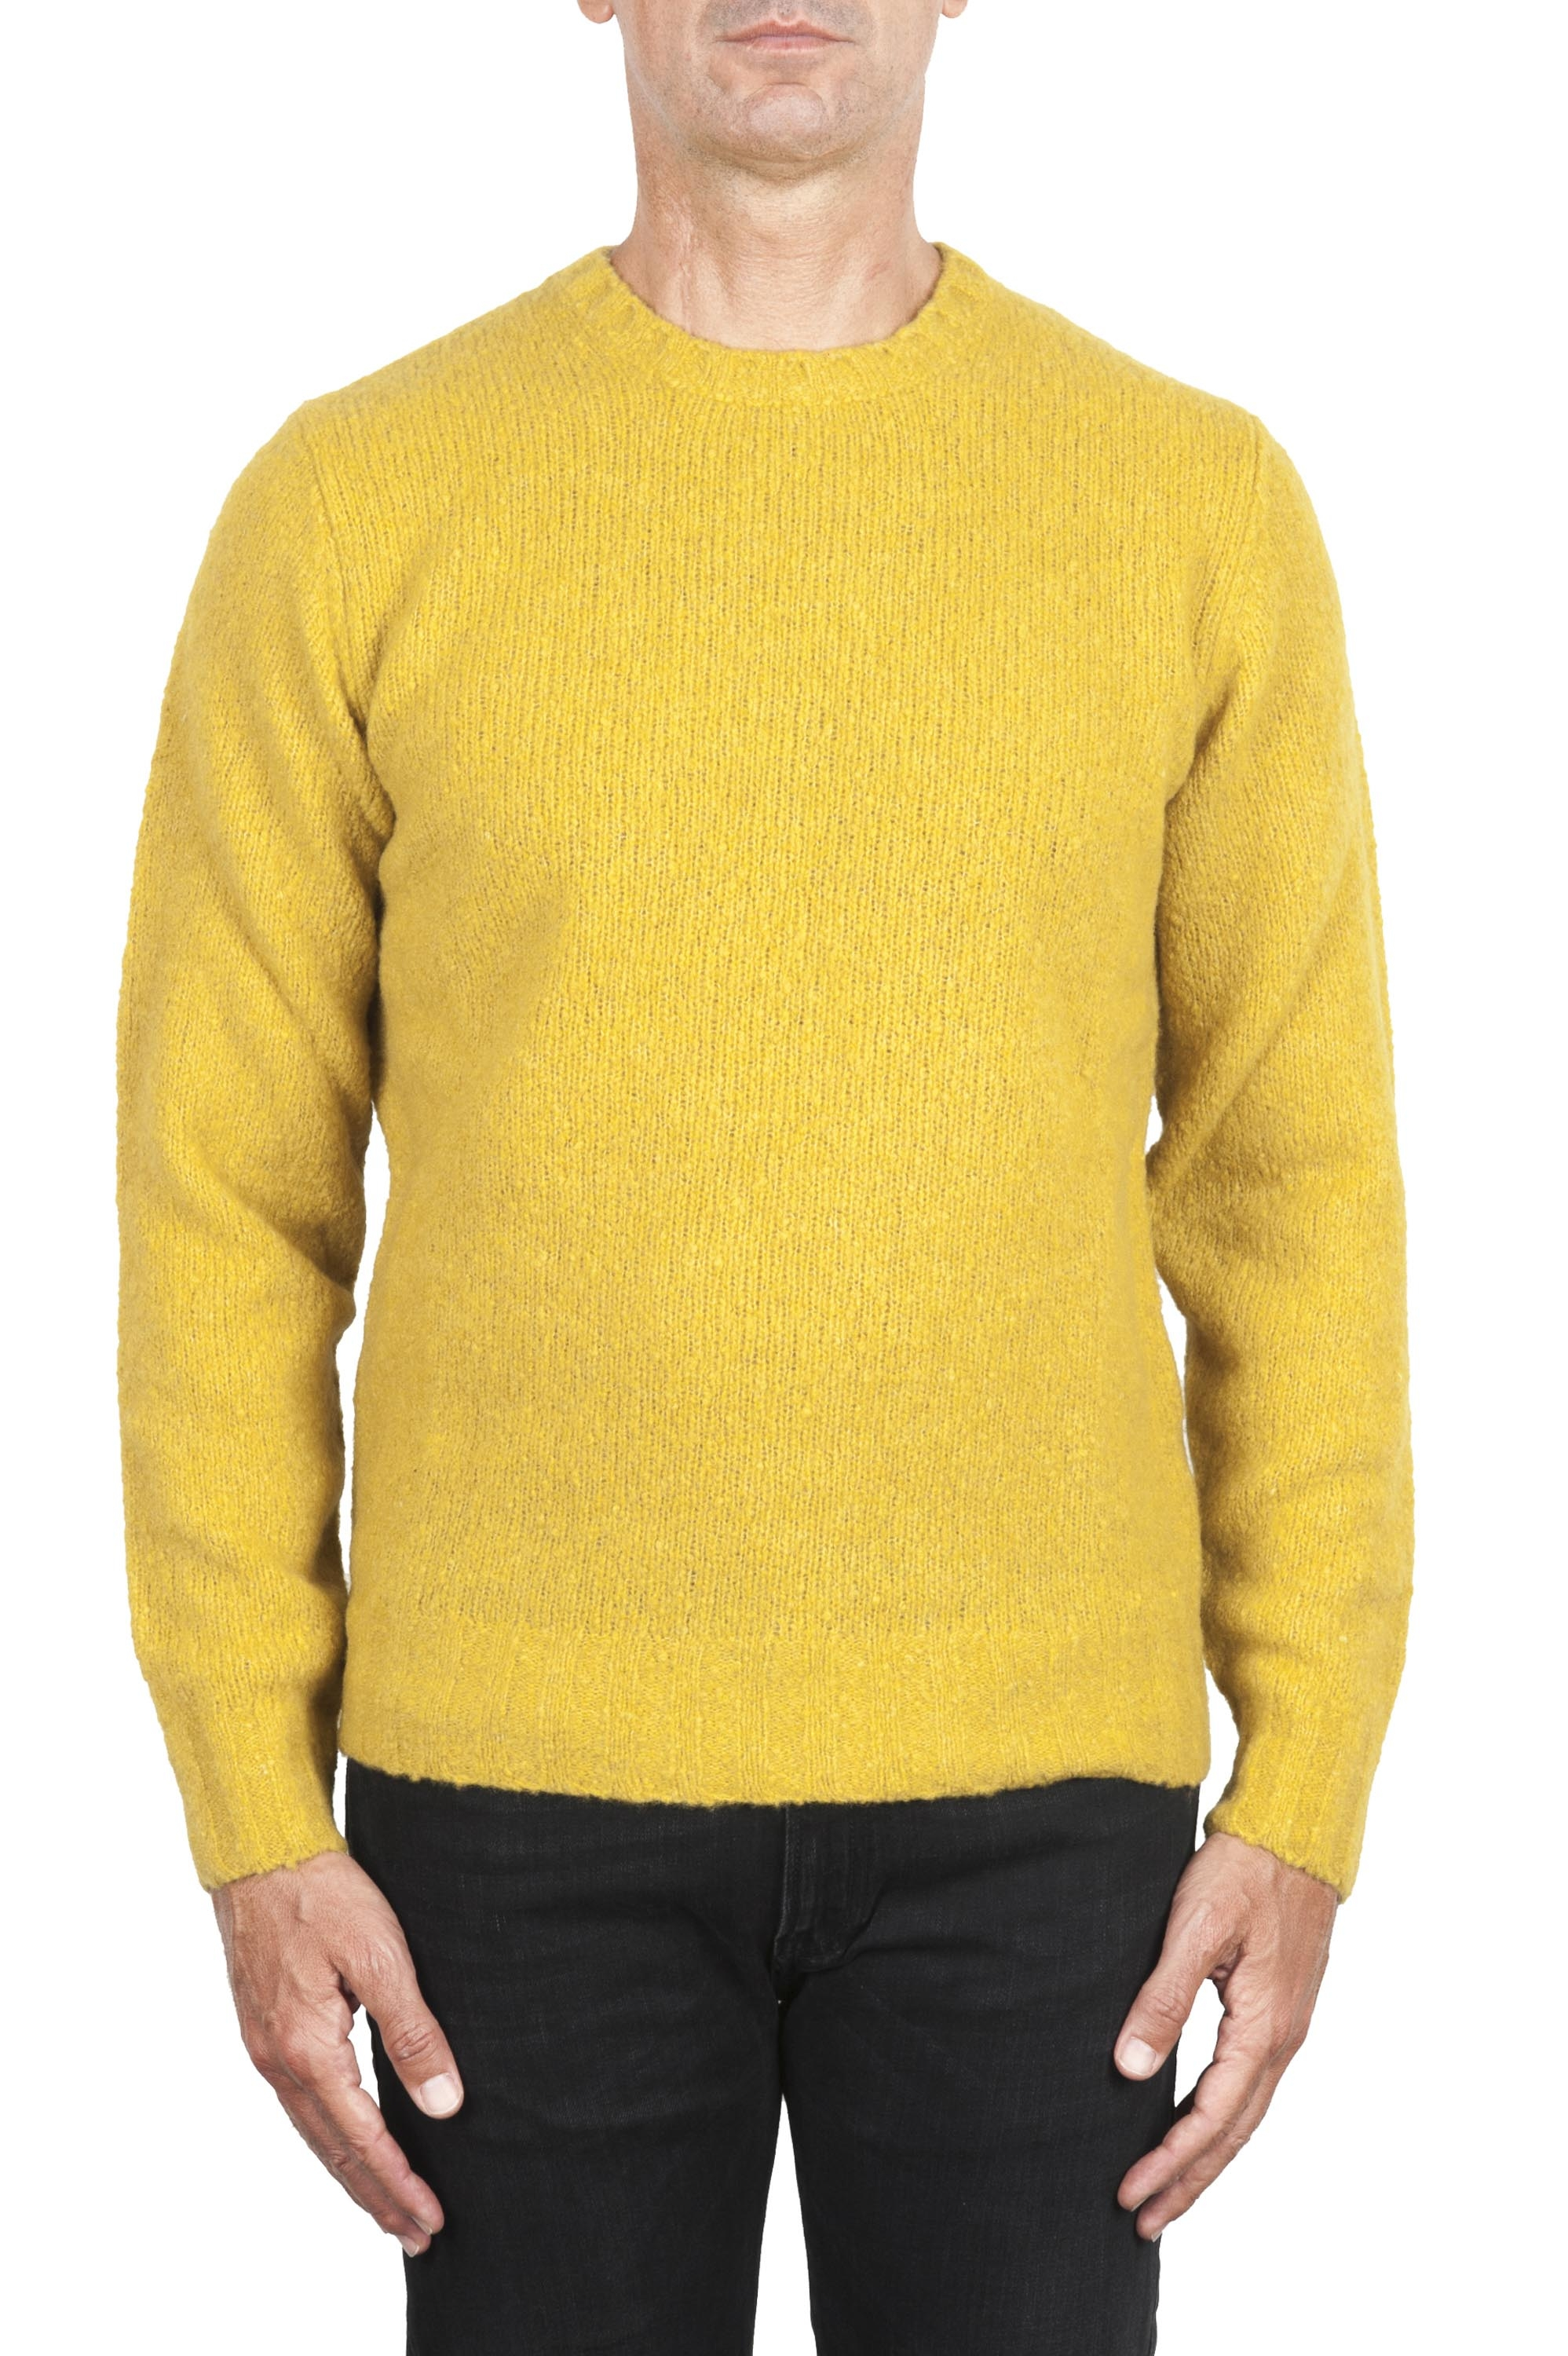 SBU 02987_2020AW Yellow cashmere and wool blend crew neck sweater 01